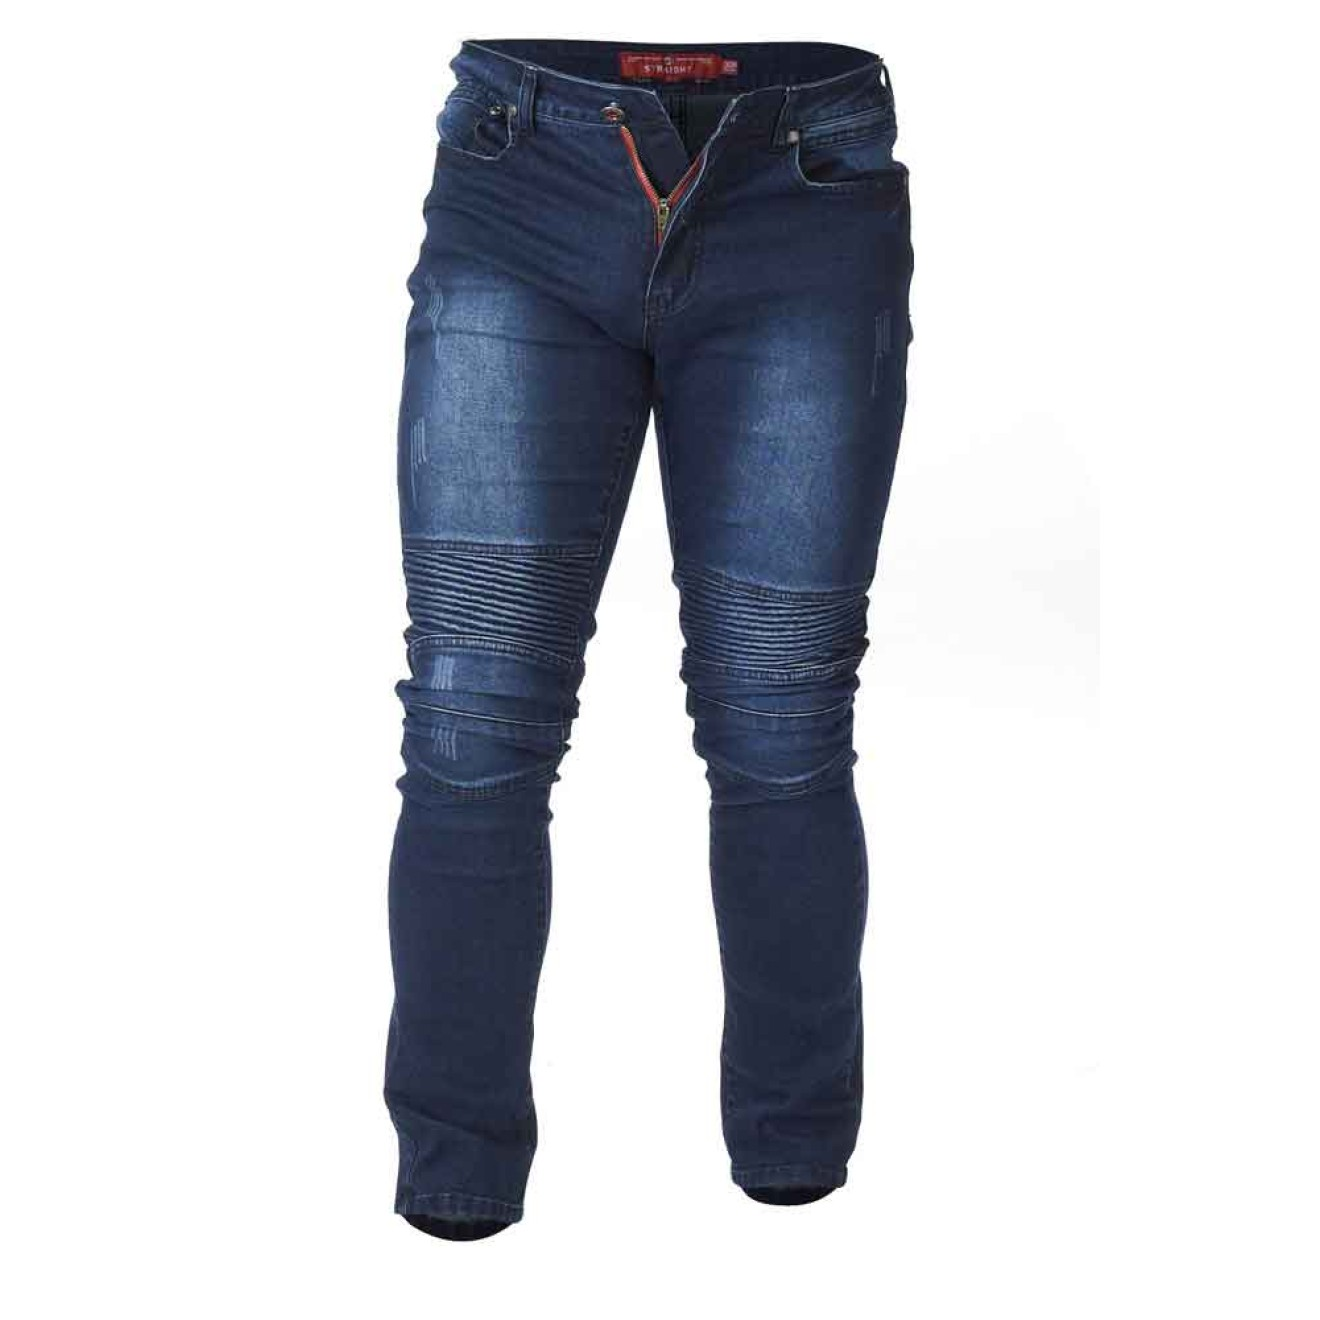 DUKE extra lange High Stretch Biker Style JEANS, tall size W32 W40 L38, Herrenjeans in Überlänge, tapered fit (konisch) vintage blue